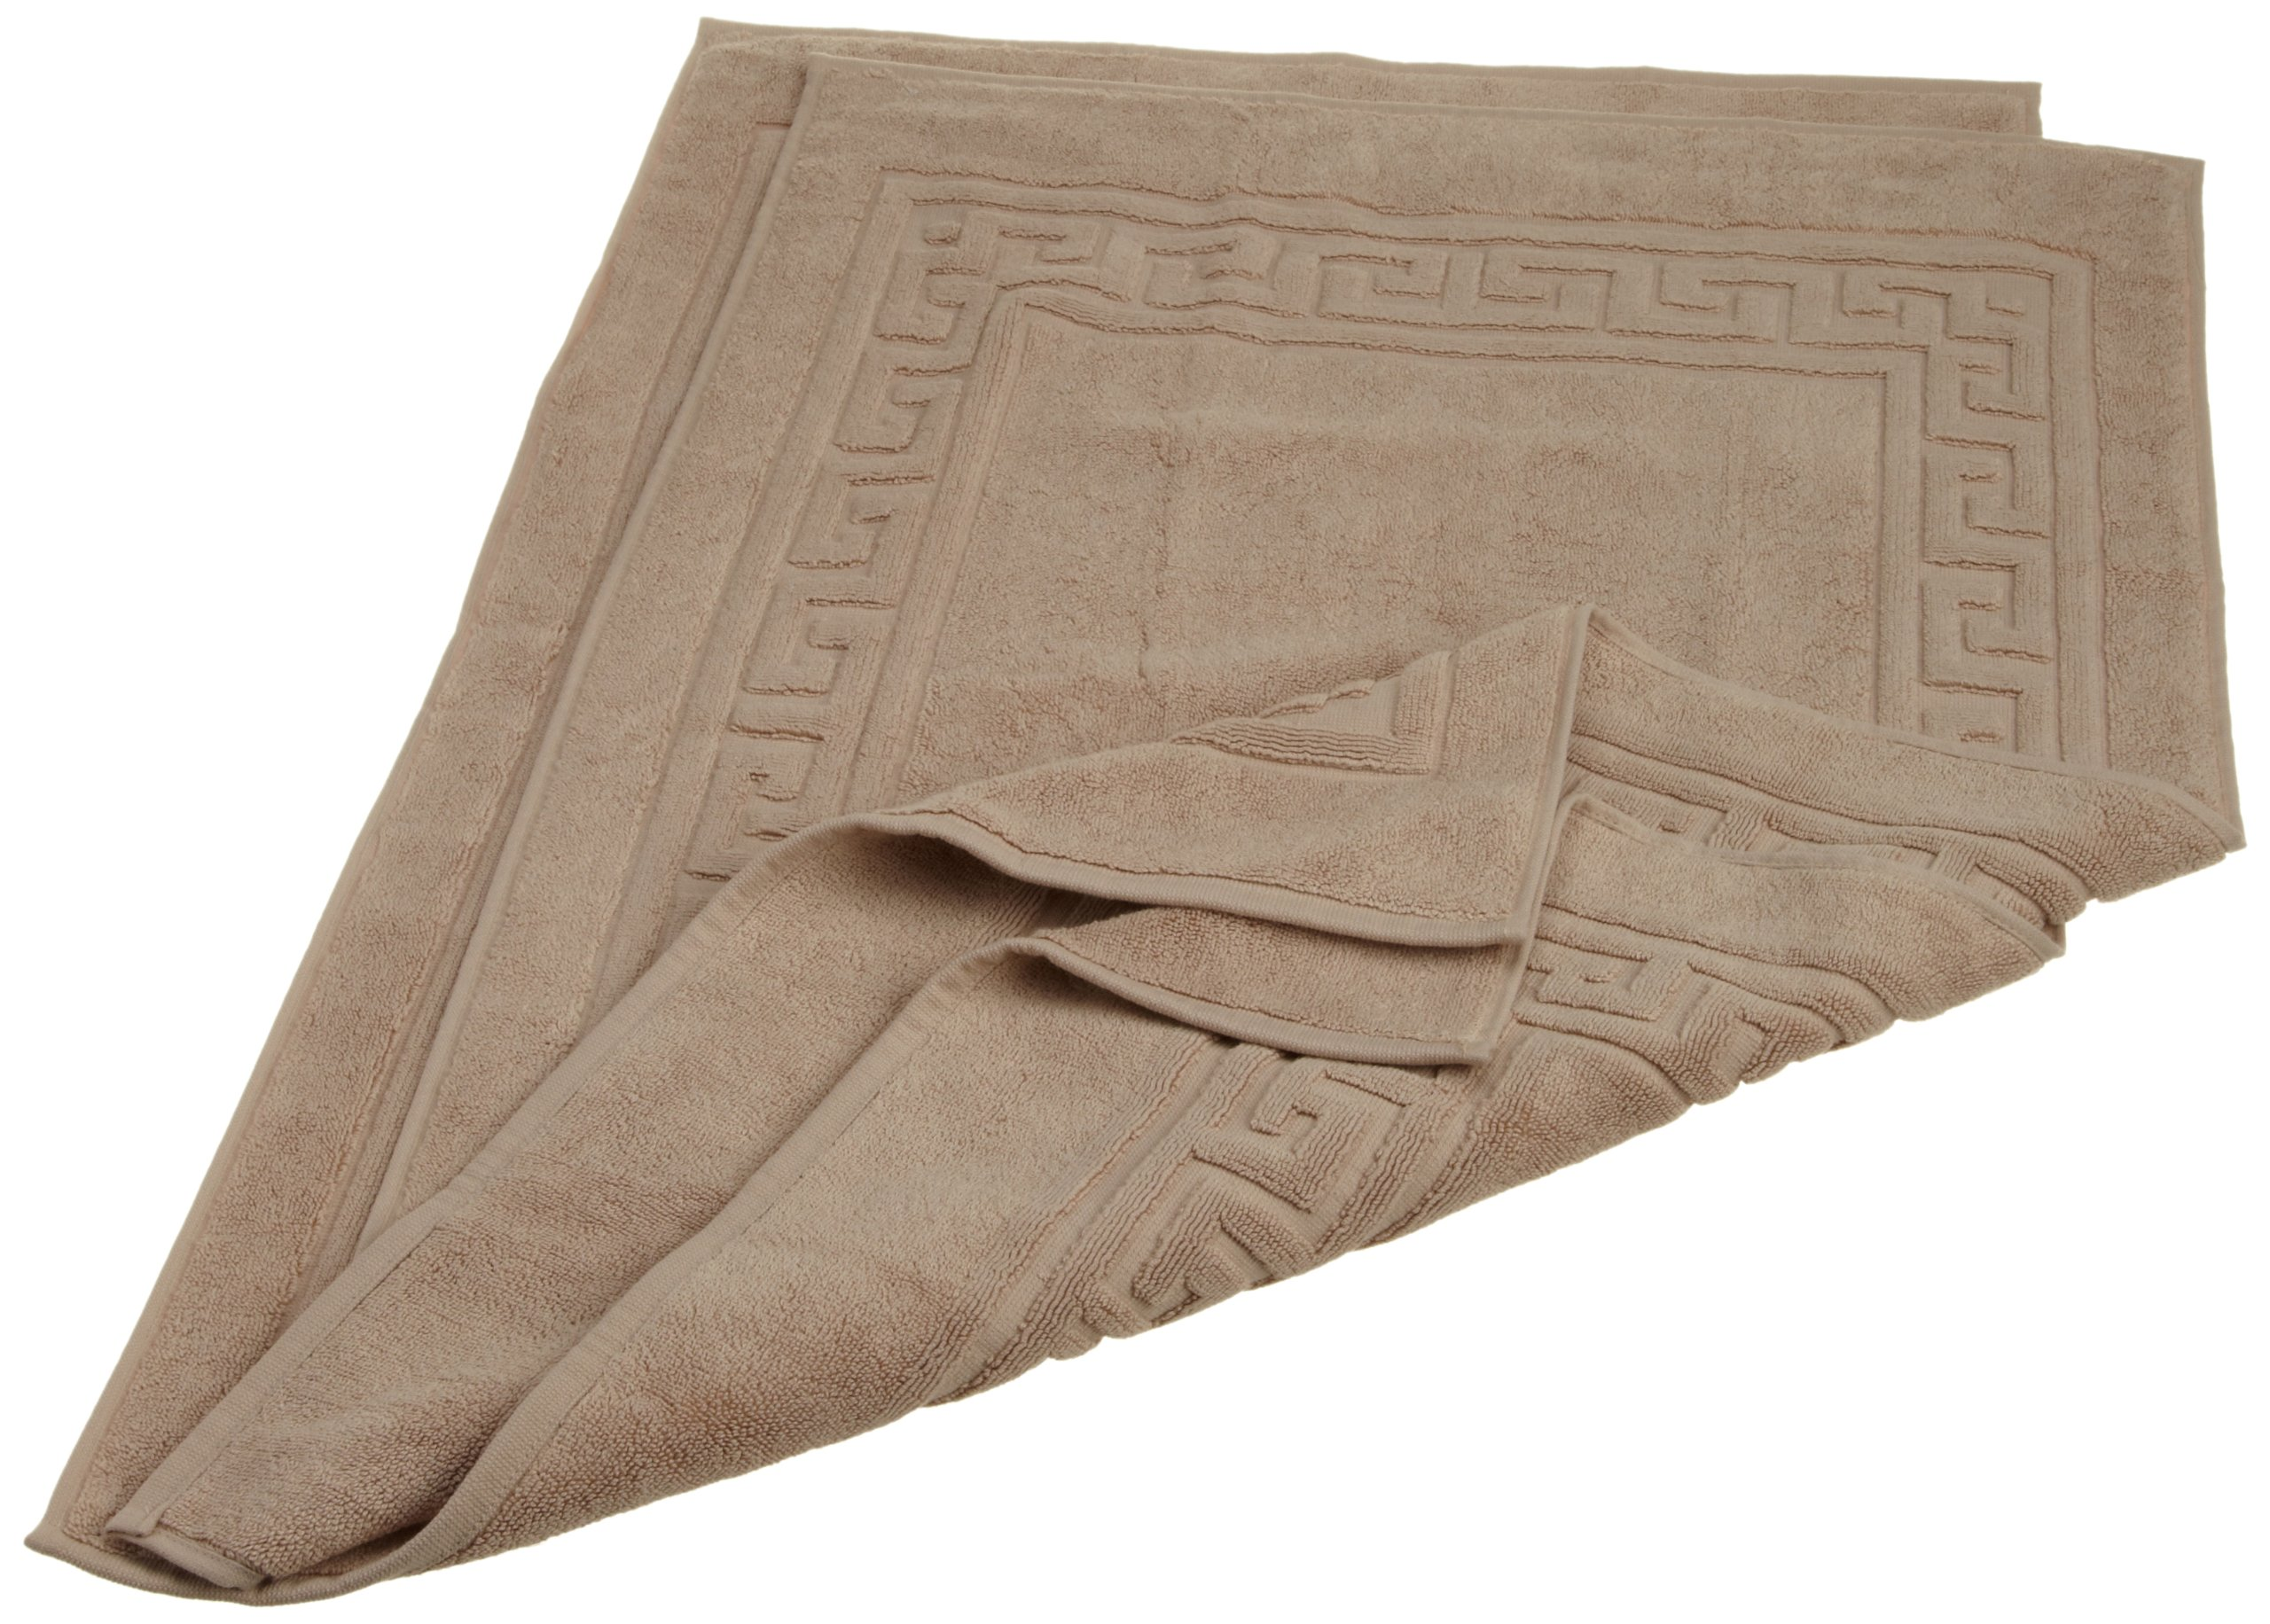 Superior Hotel & Spa Quality Bath Mat Set of 2, Made of 100% Premium Long-Staple Combed Cotton, Durable and Washable Bathroom Mat 2-Pack - Taupe, 22'' x 35'' each